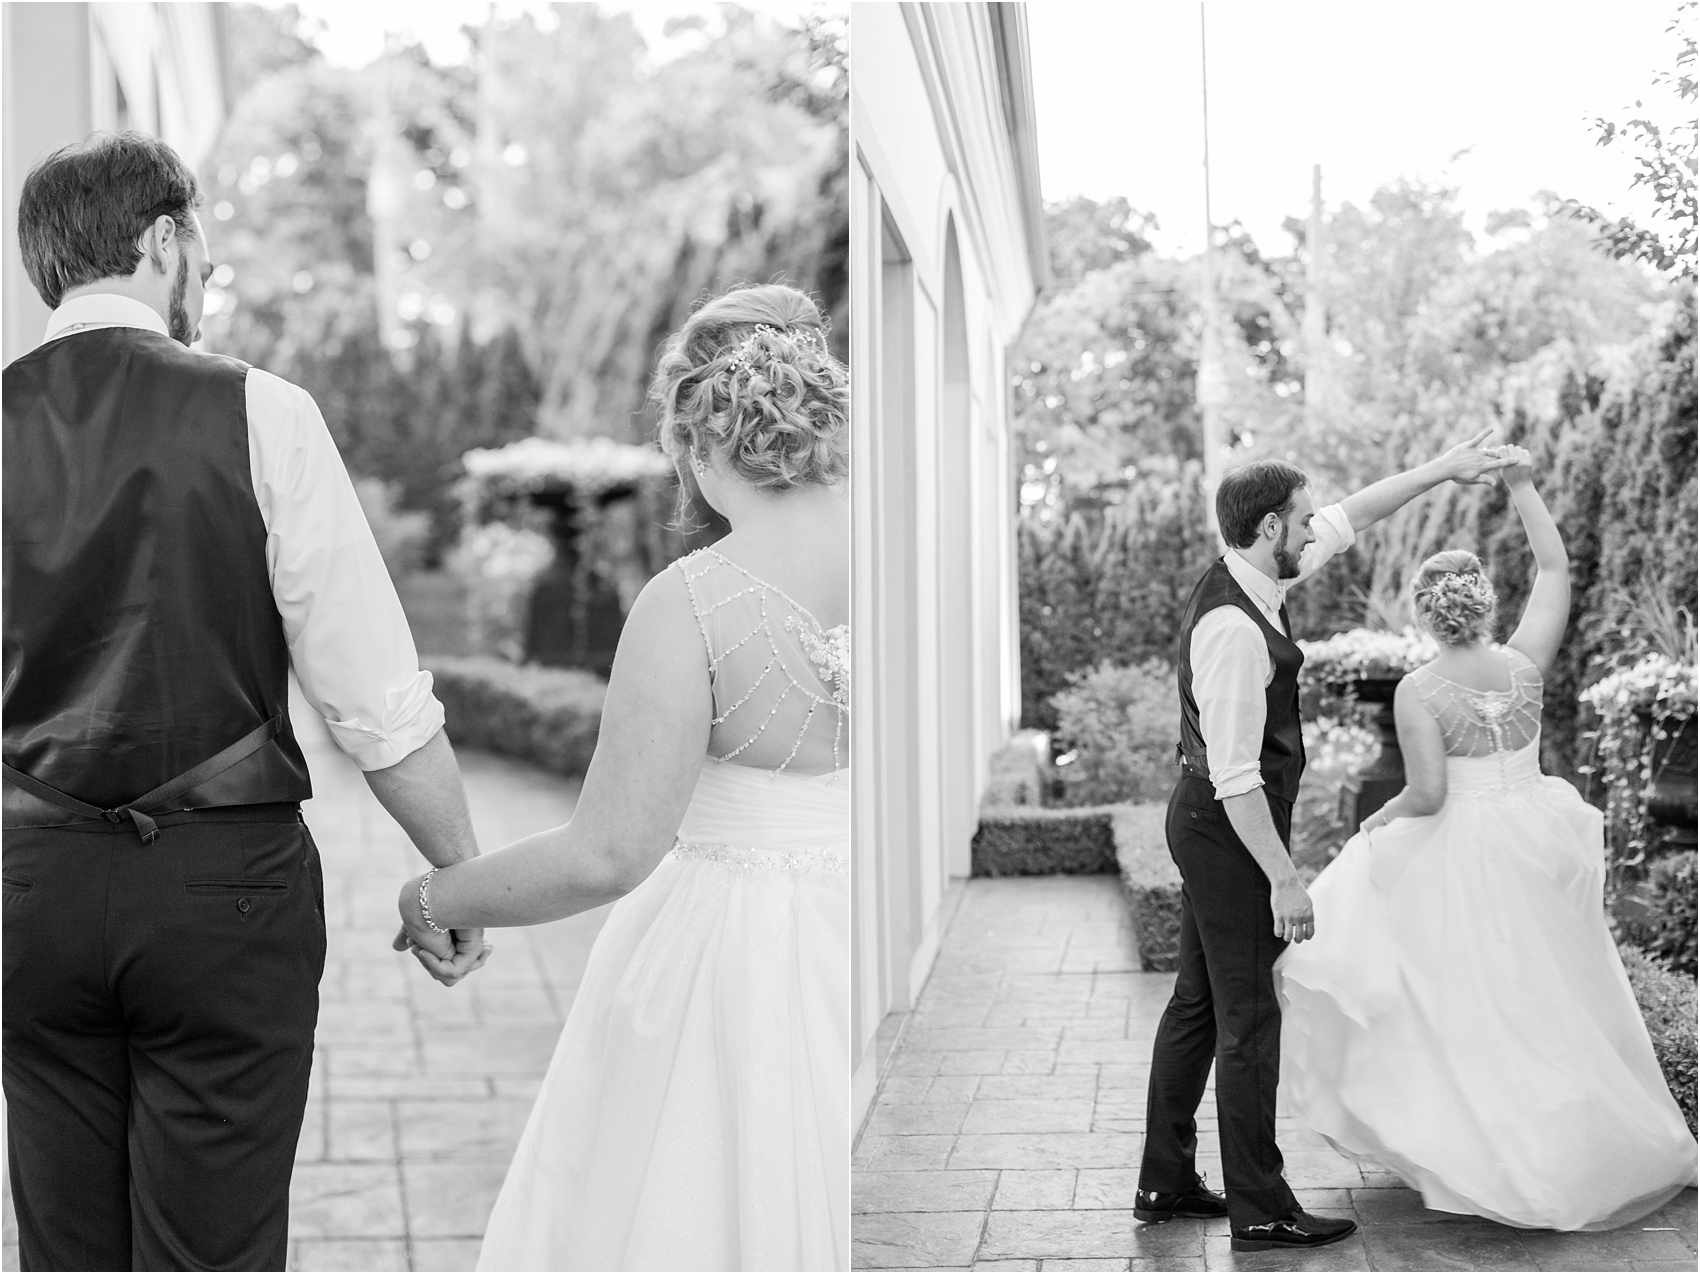 lord-of-the-rings-inspired-wedding-photos-at-crystal-gardens-in-howell-mi-by-courtney-carolyn-photography_0109.jpg